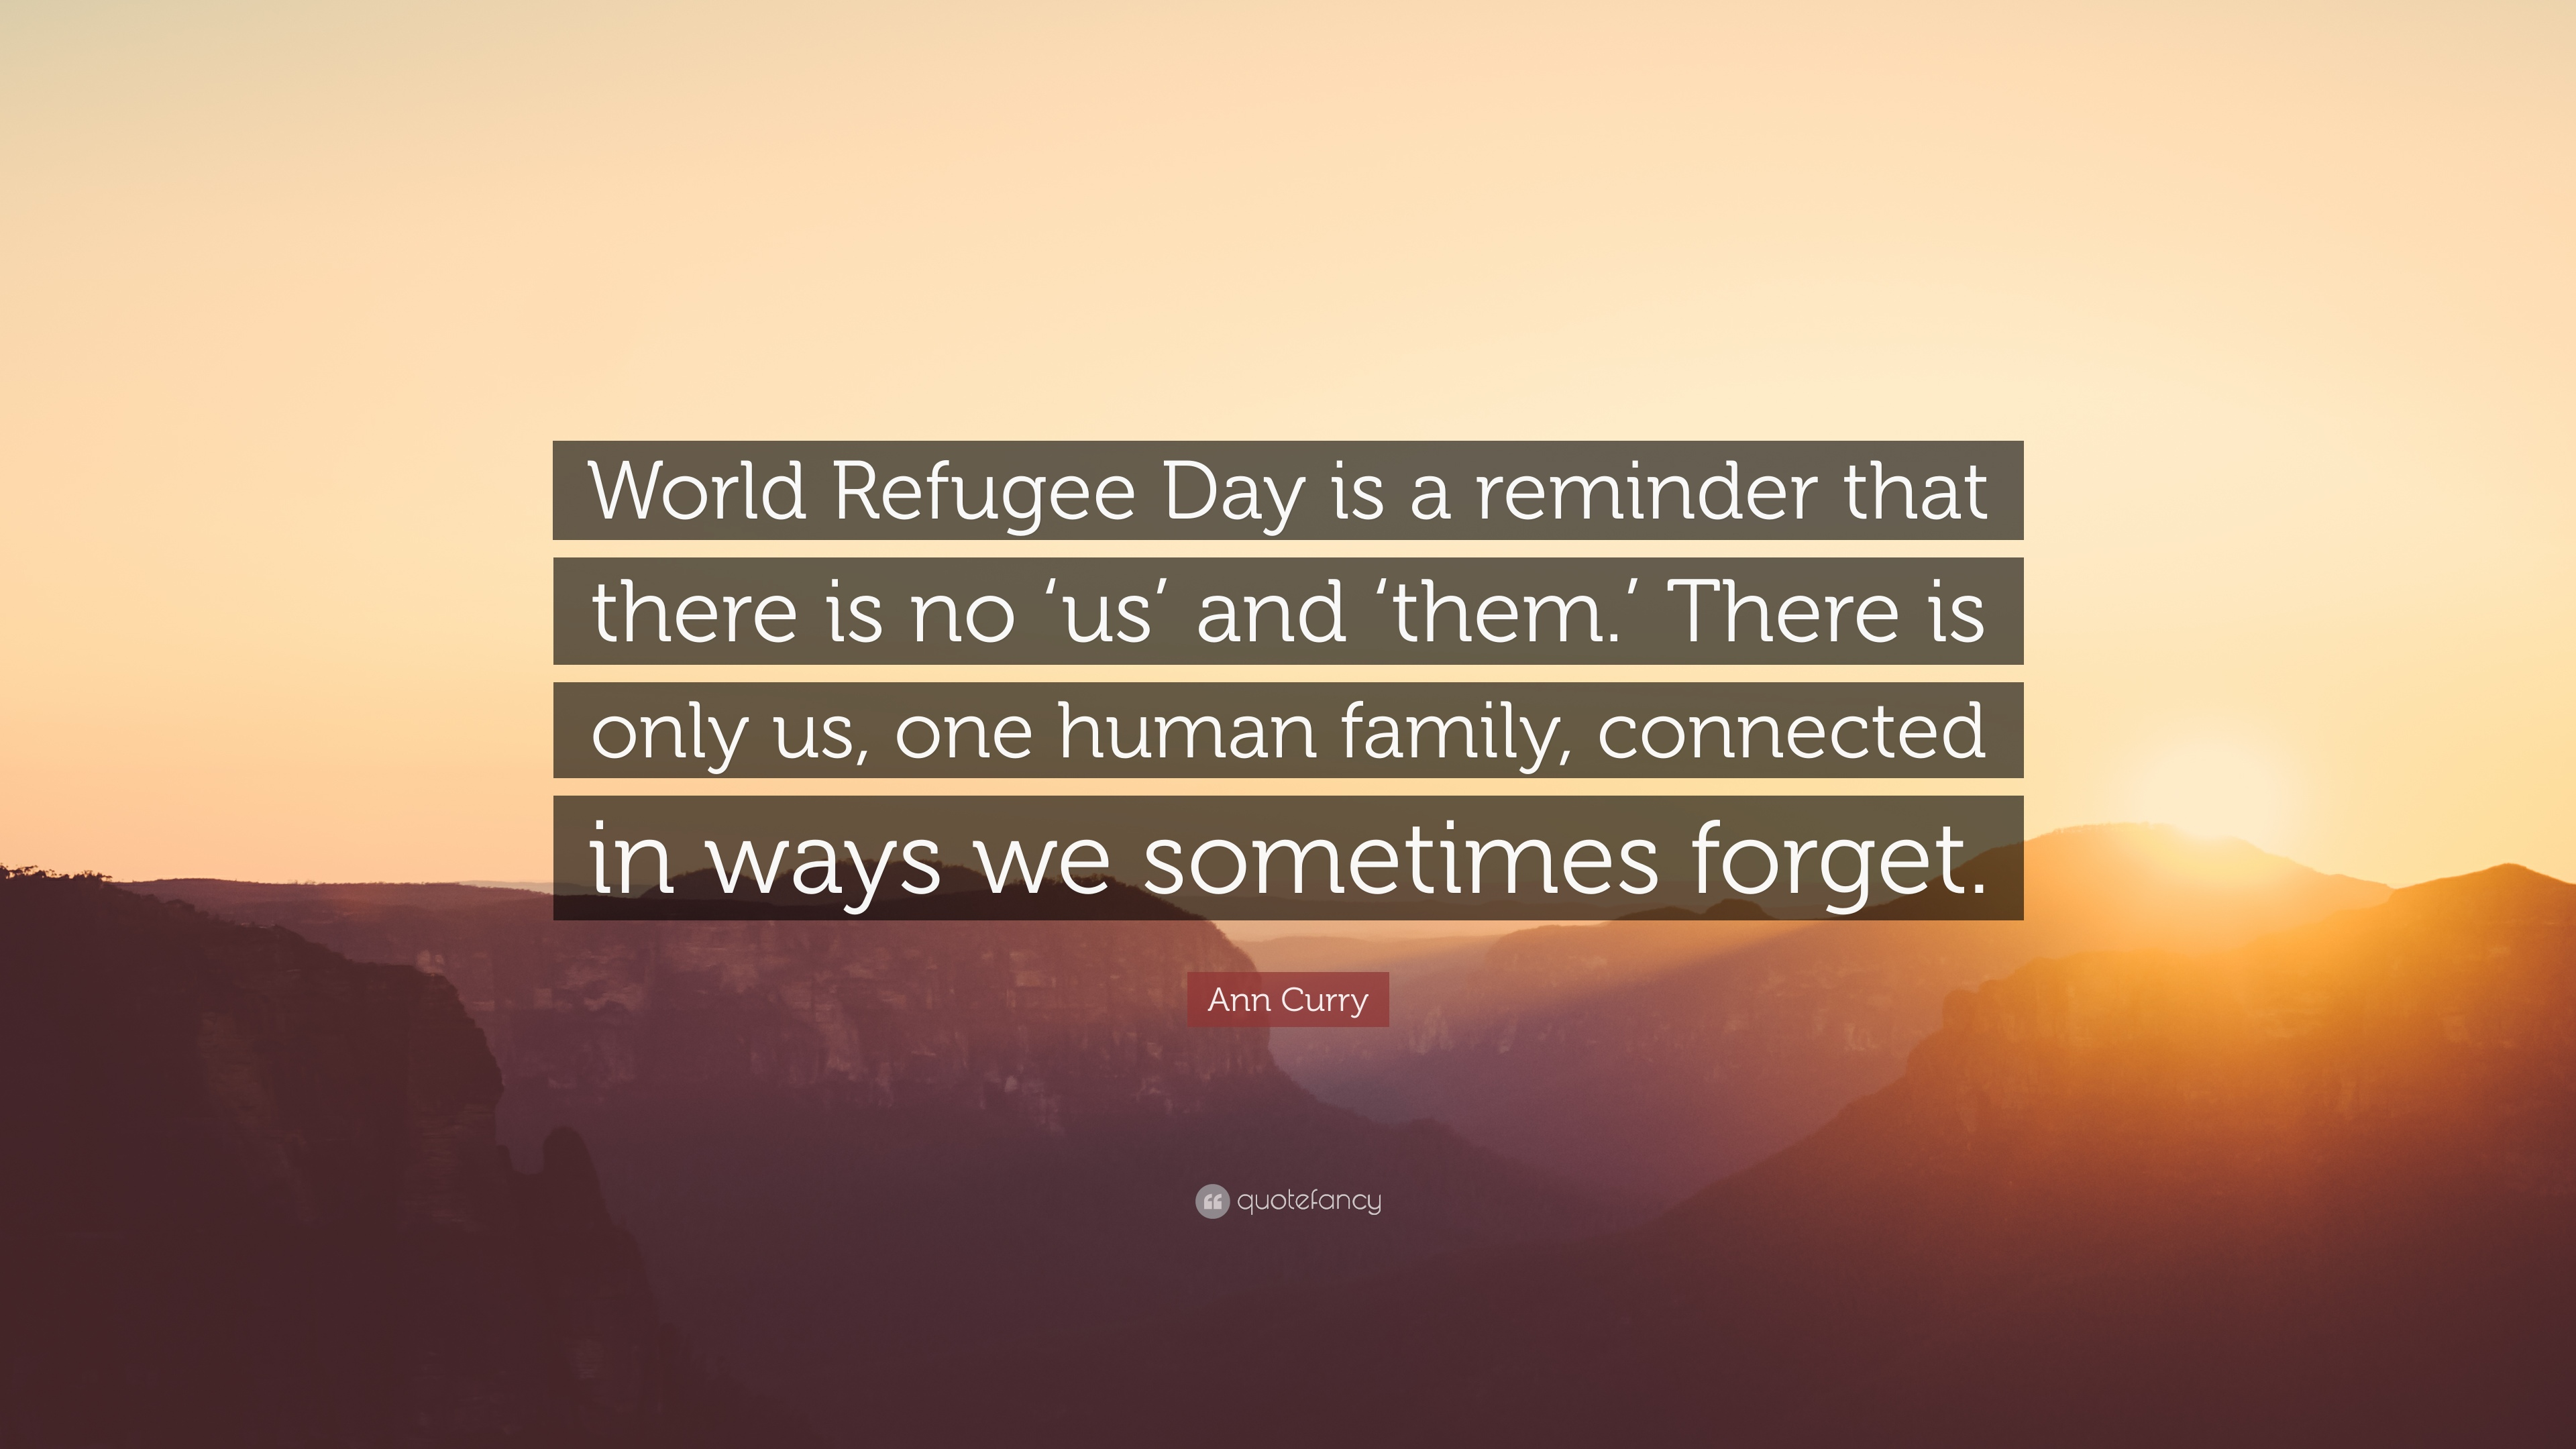 World refugee day is a reminder that there is no 'us' and 'them'. There is only us, one human family, connected in ways we sometimes forget -Ann Curry [960×540].